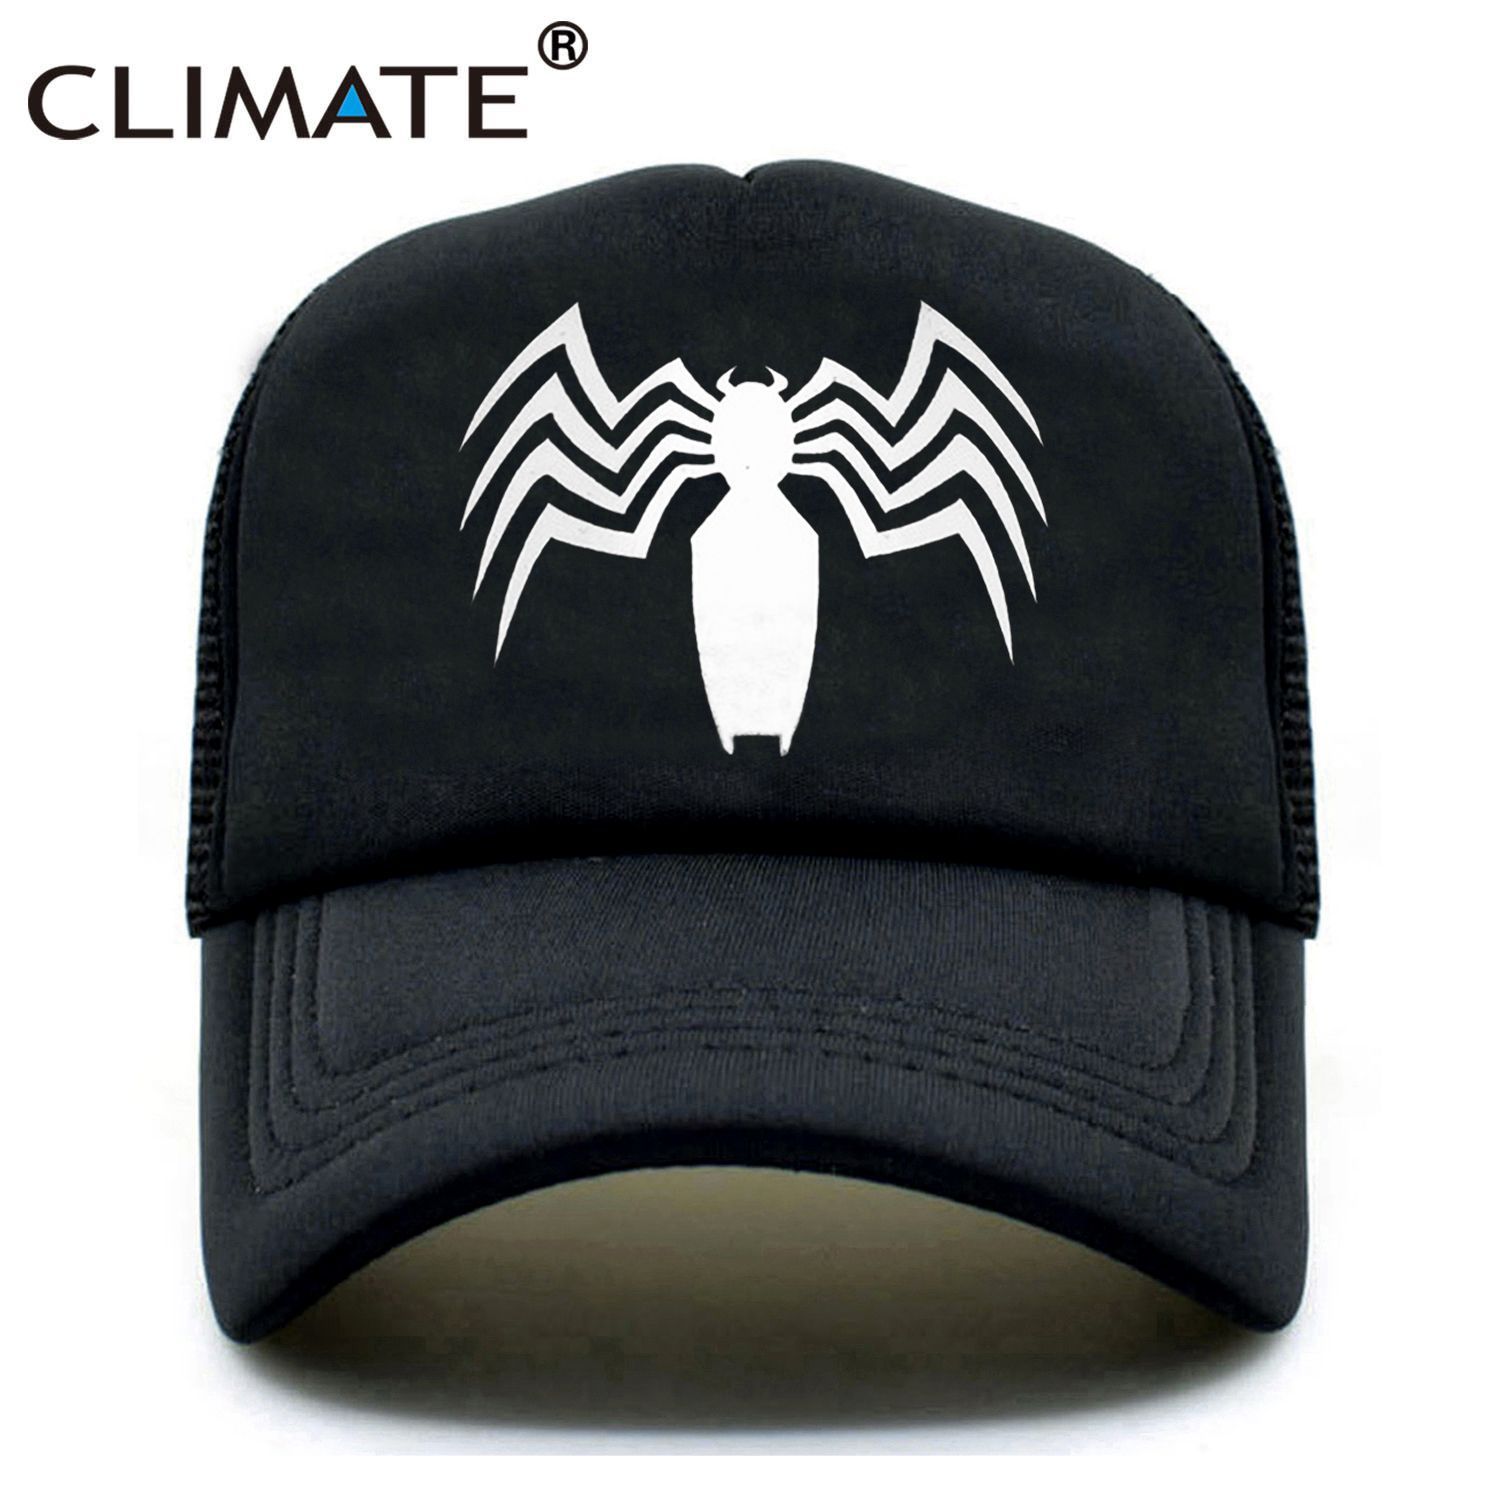 CLIMATE New Men Venom Trucker Caps Hat Black SpiderMan Hip Hop Cool Venom Mesh Caps Venom Summer Seaside Cap Hat for Men Youth